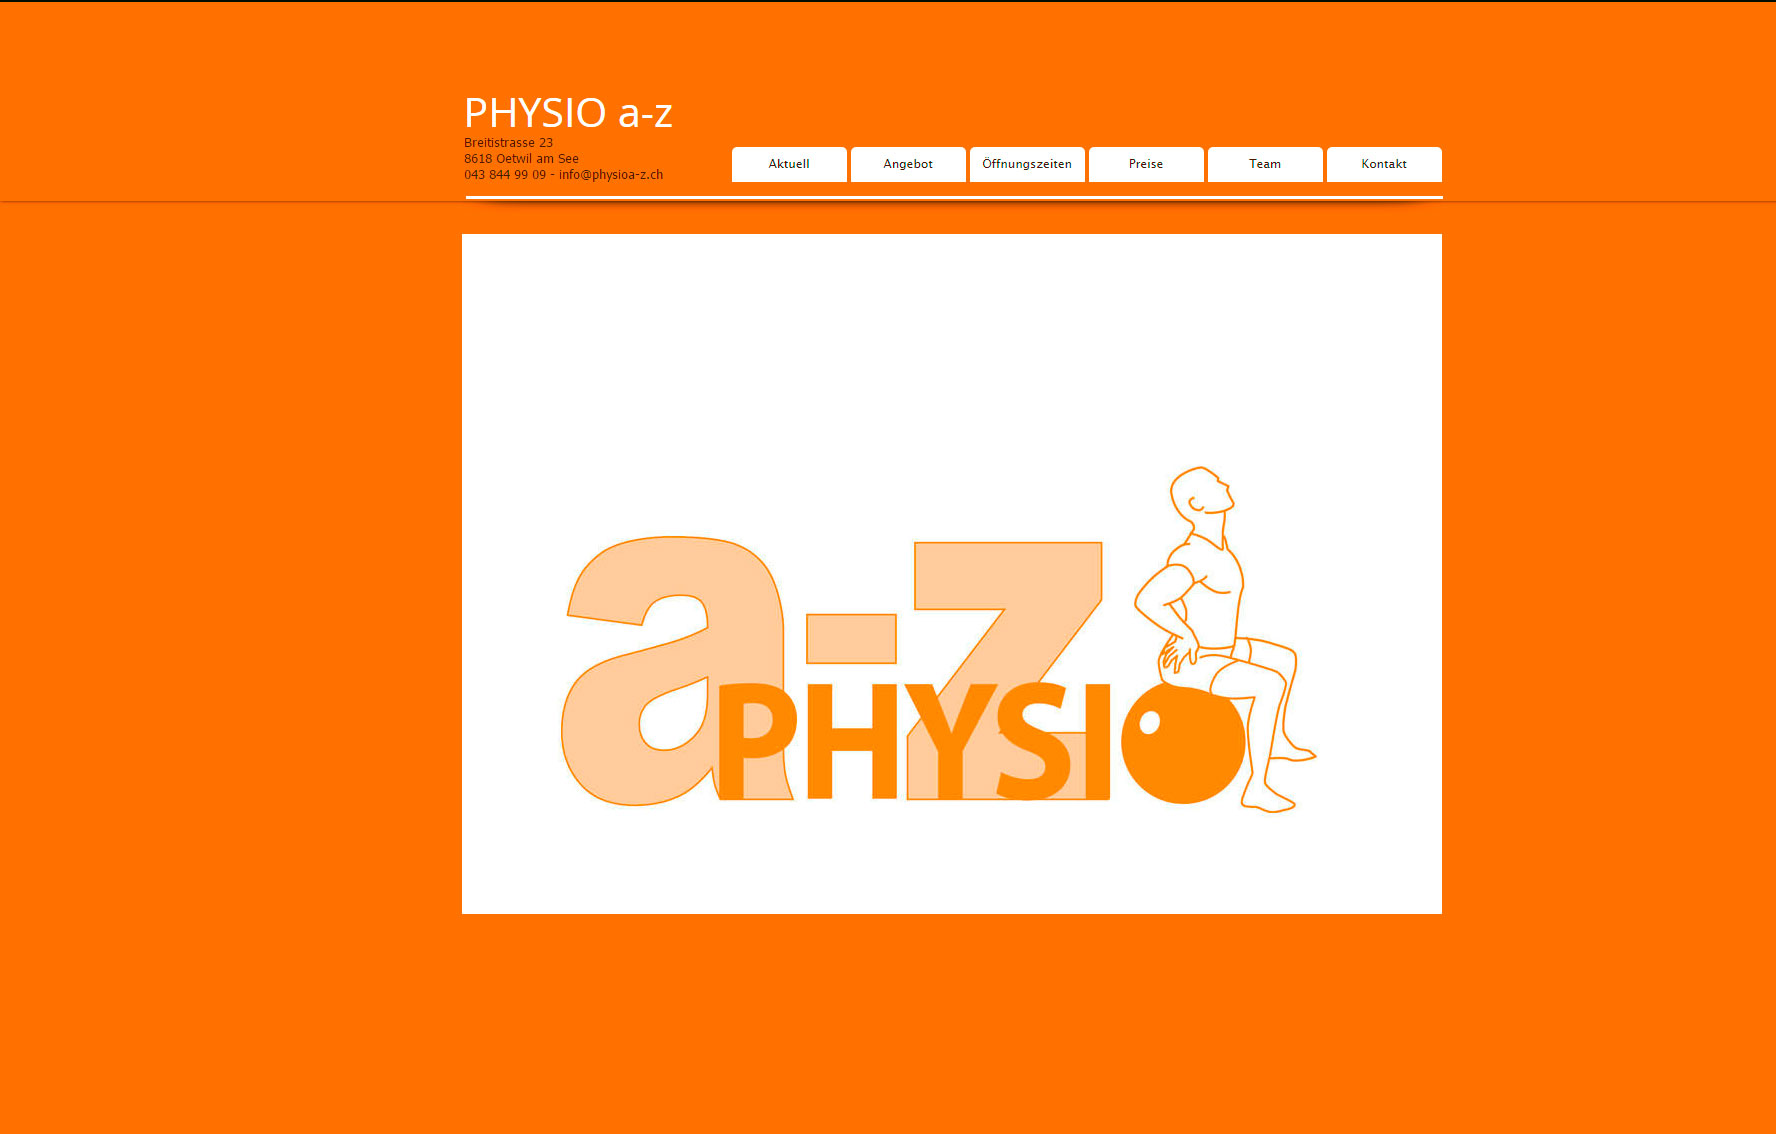 physioa-z